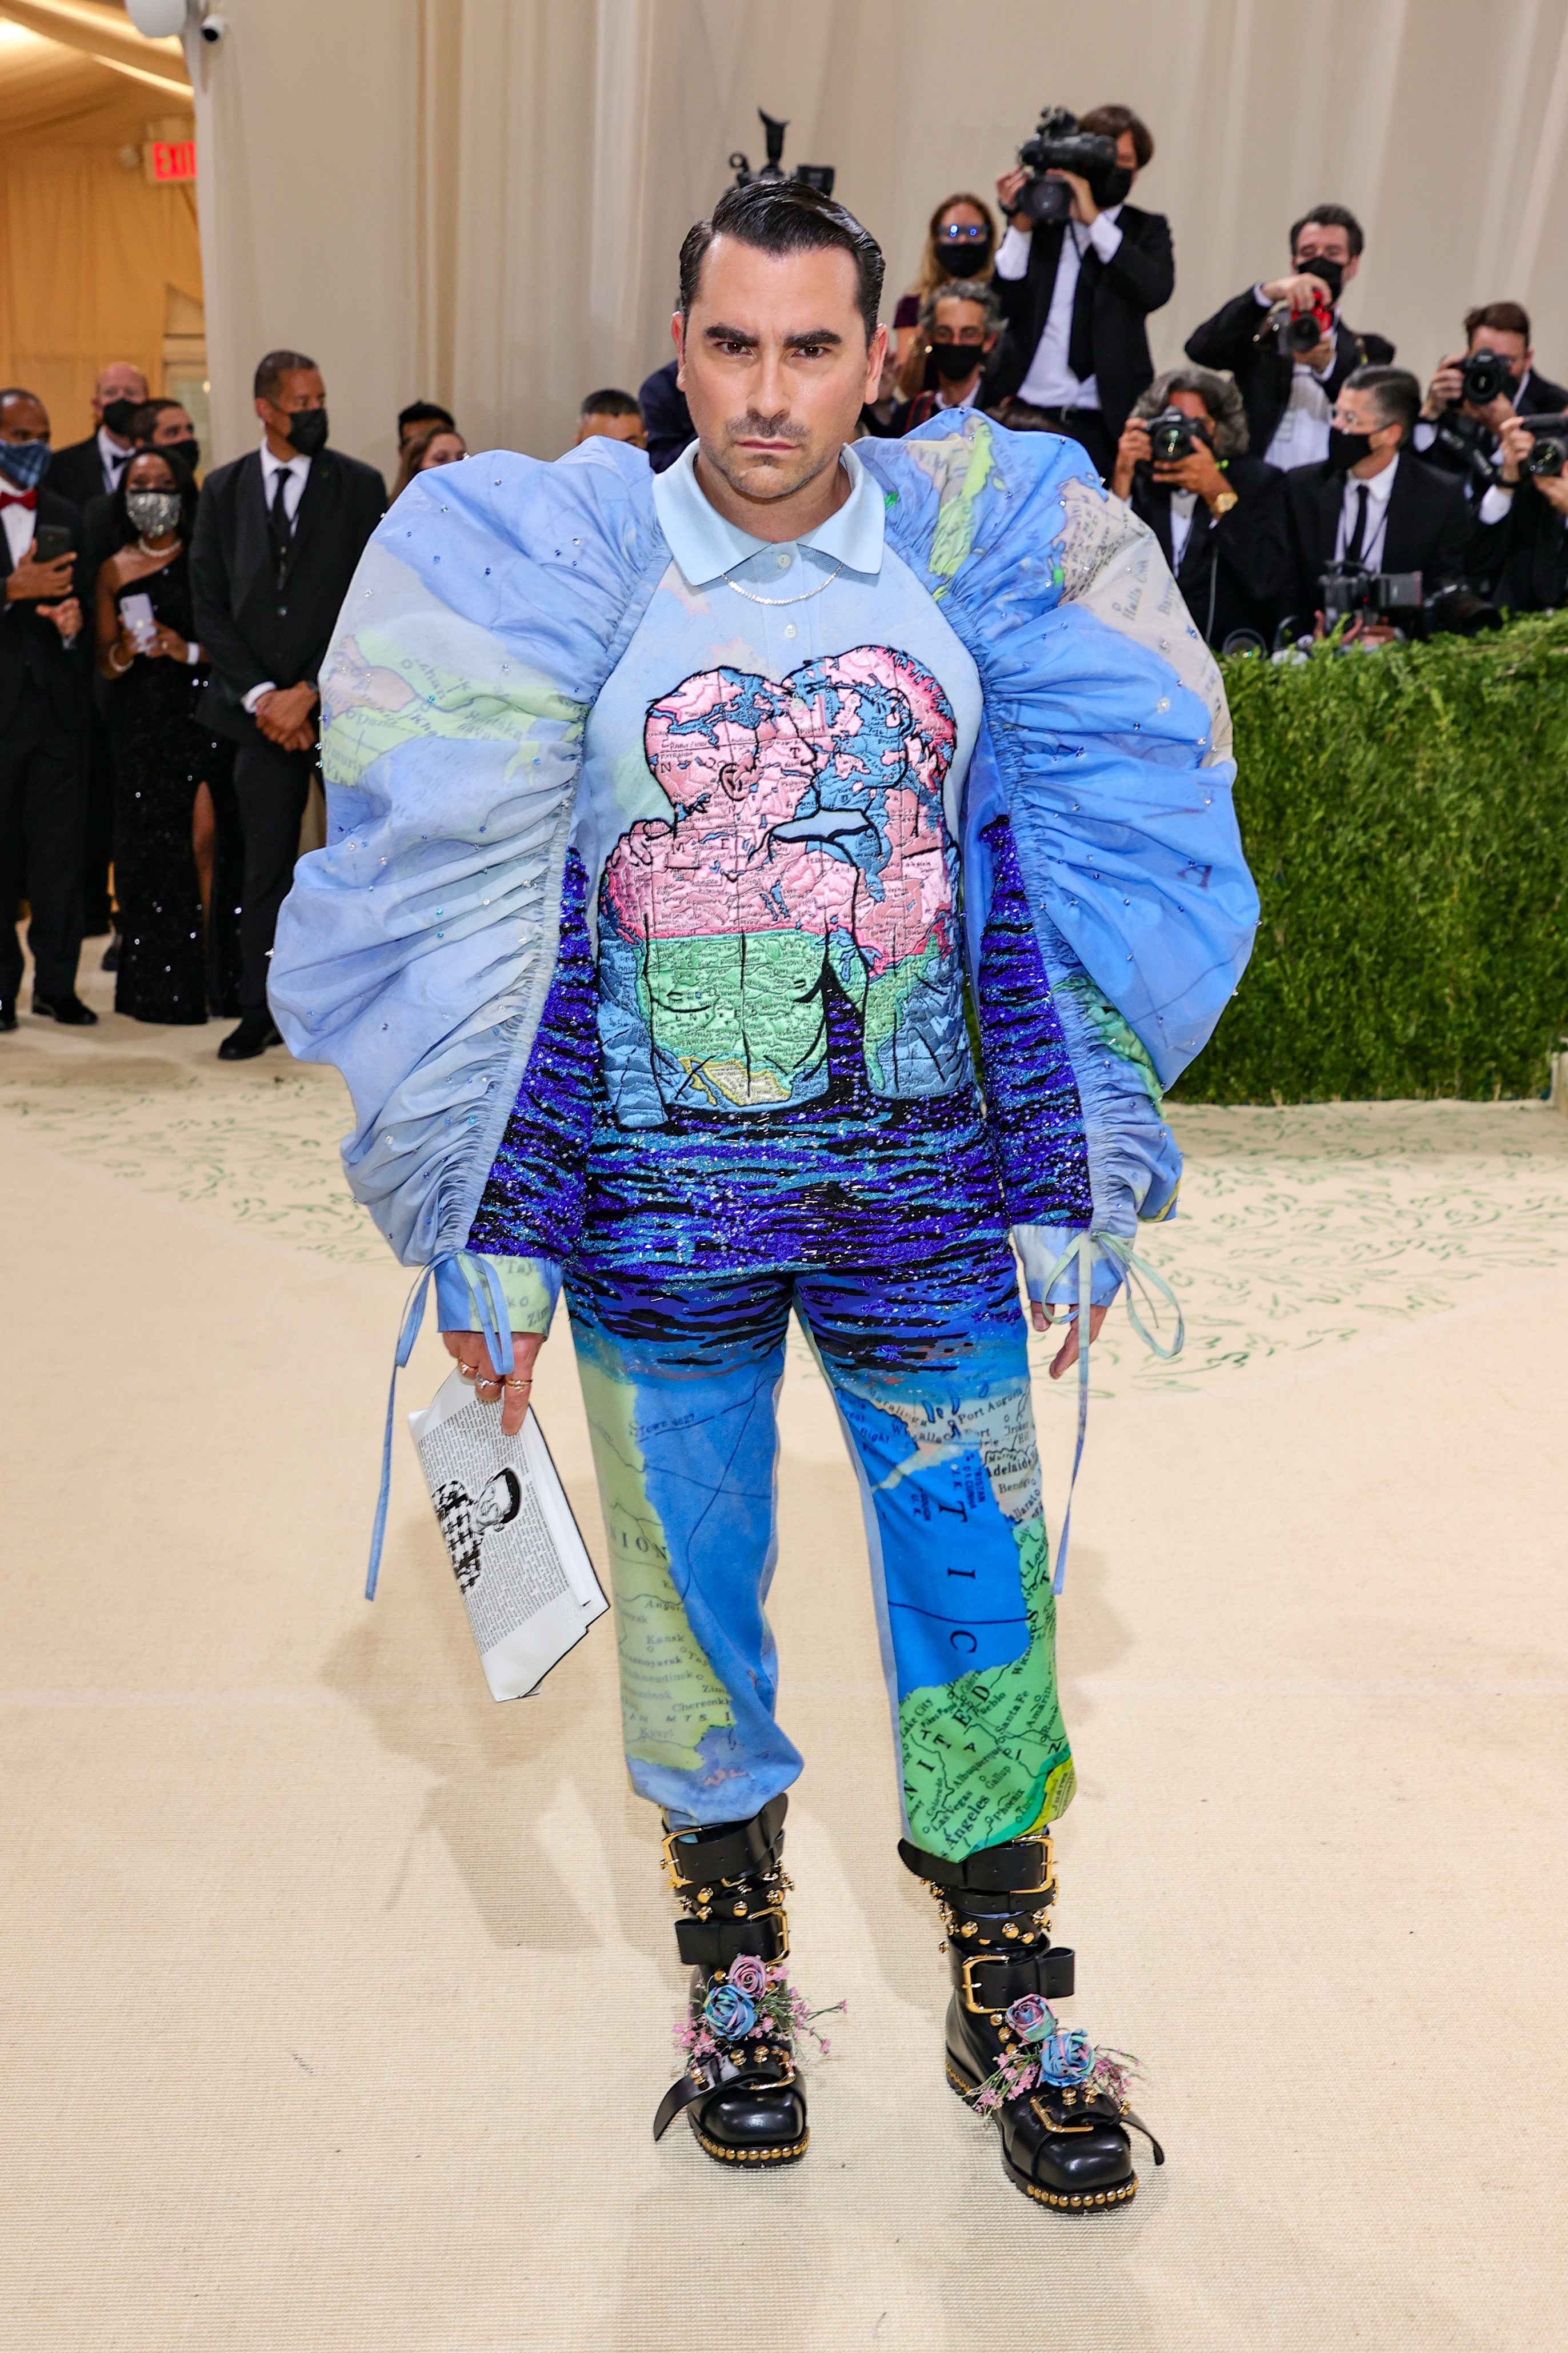 NEW YORK, NEW YORK - SEPTEMBER 13: Dan Levy attends The 2021 Met Gala Celebrating In America: A Lexicon Of Fashion at Metropolitan Museum of Art on September 13, 2021 in New York City. (Photo by Theo Wargo/Getty Images) (Foto: Getty Images)